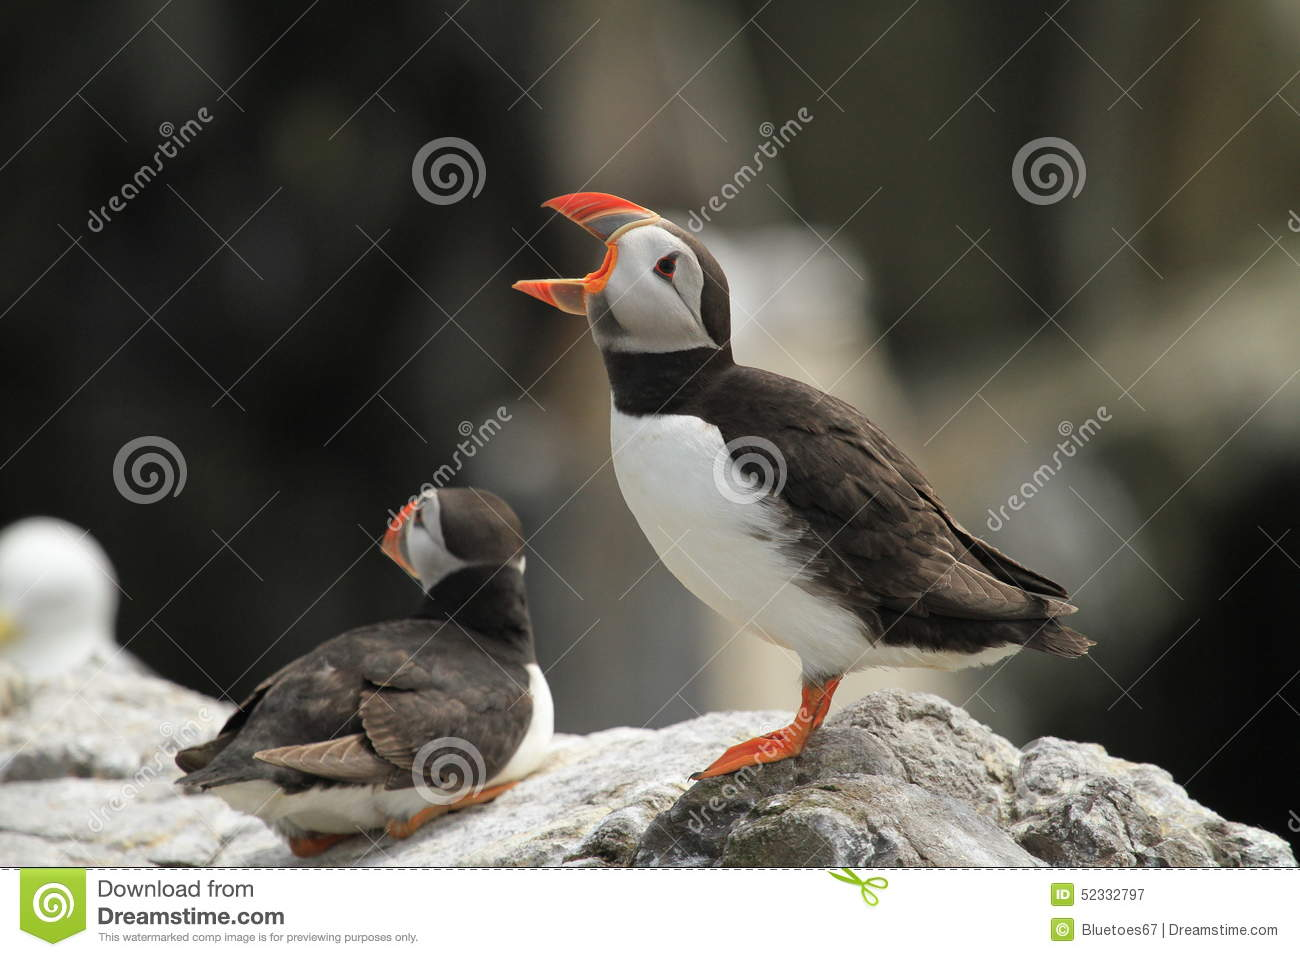 Download Puffin Standing On A Rock With Open Mouth Stock Image - Image of environment, creature: 52332797